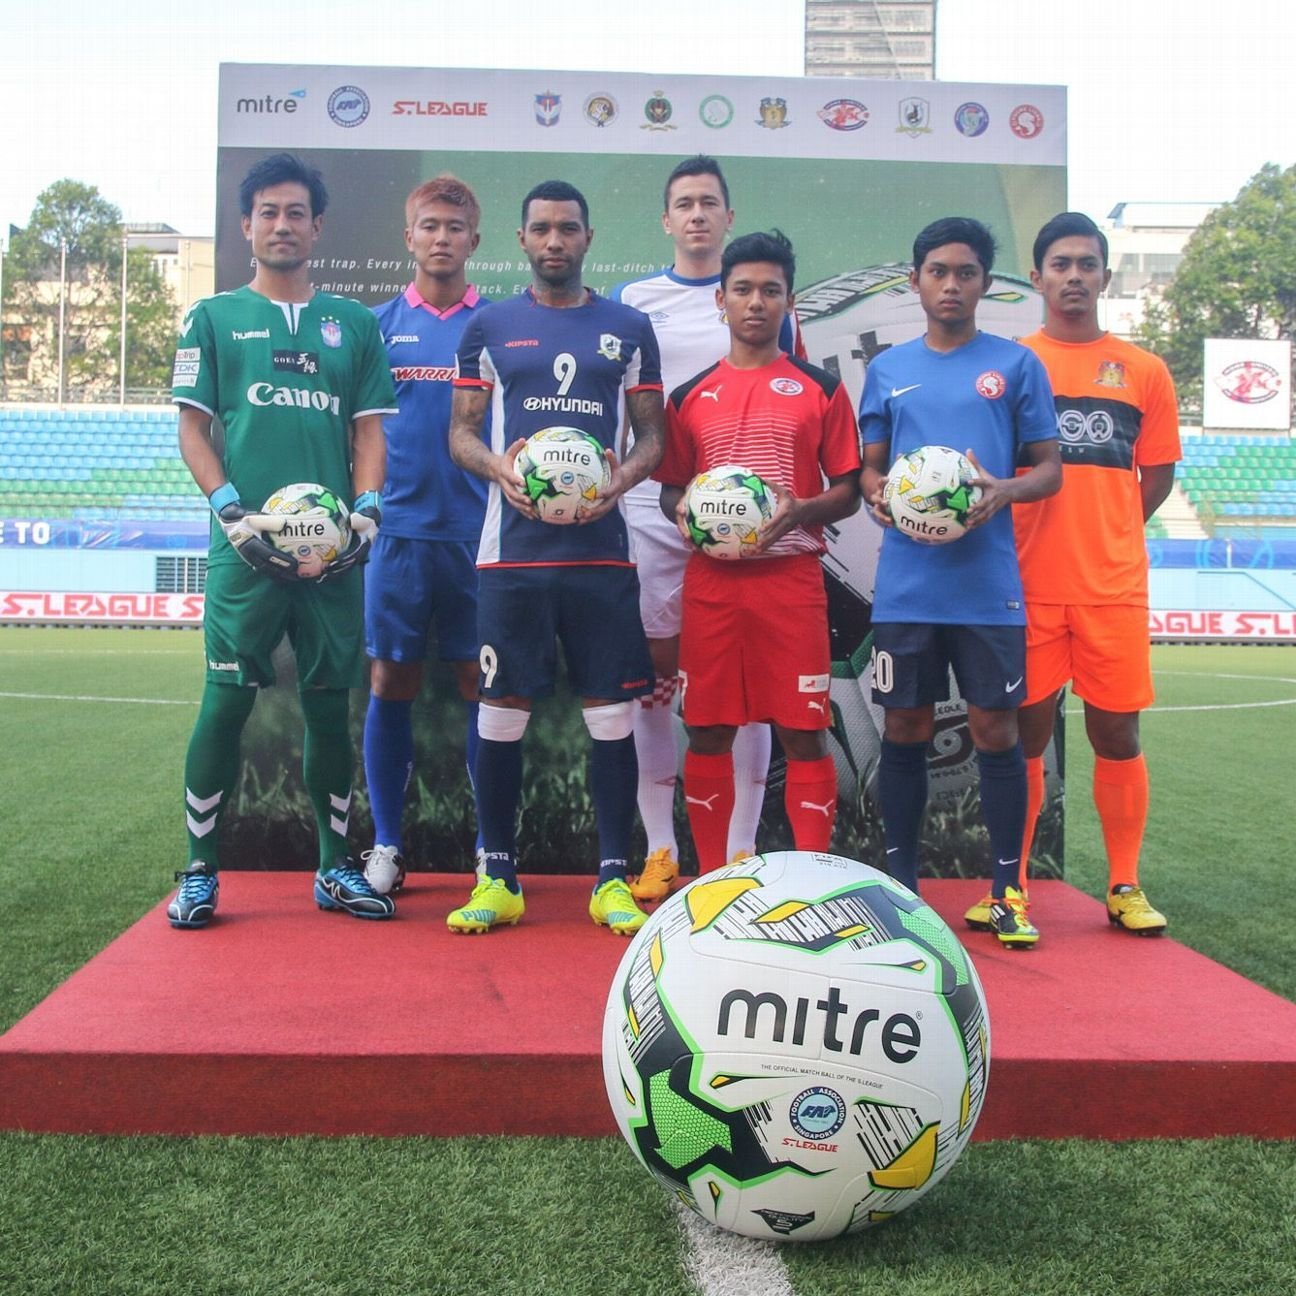 S.League ball sponsor Mitre